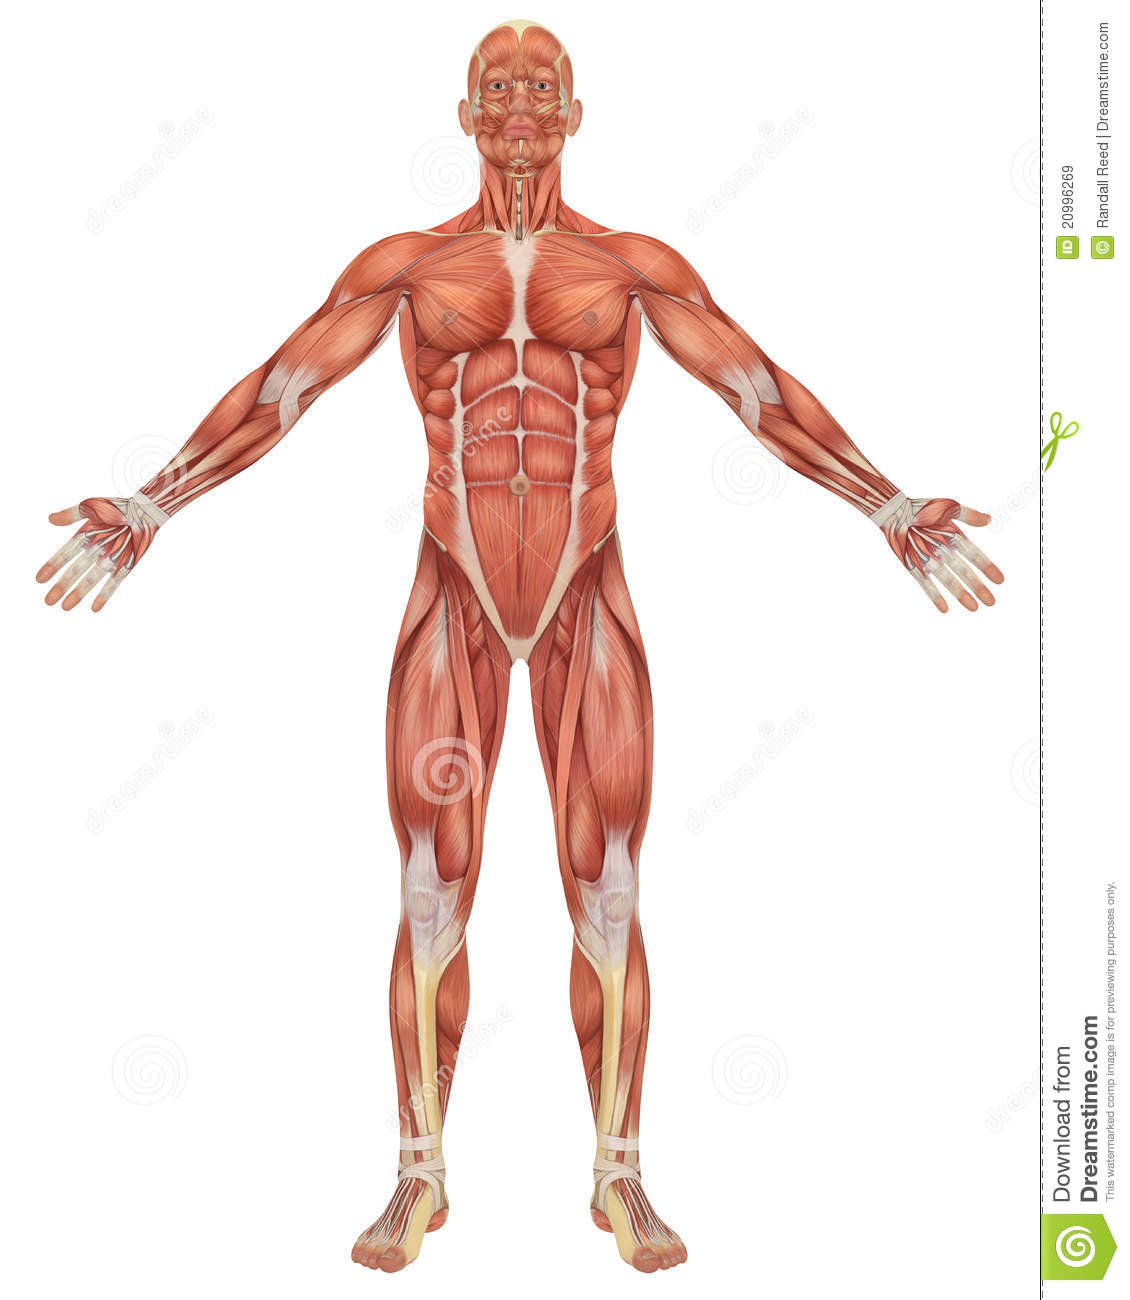 Male Muscular Anatomy Front View Royalty Free Stock Images